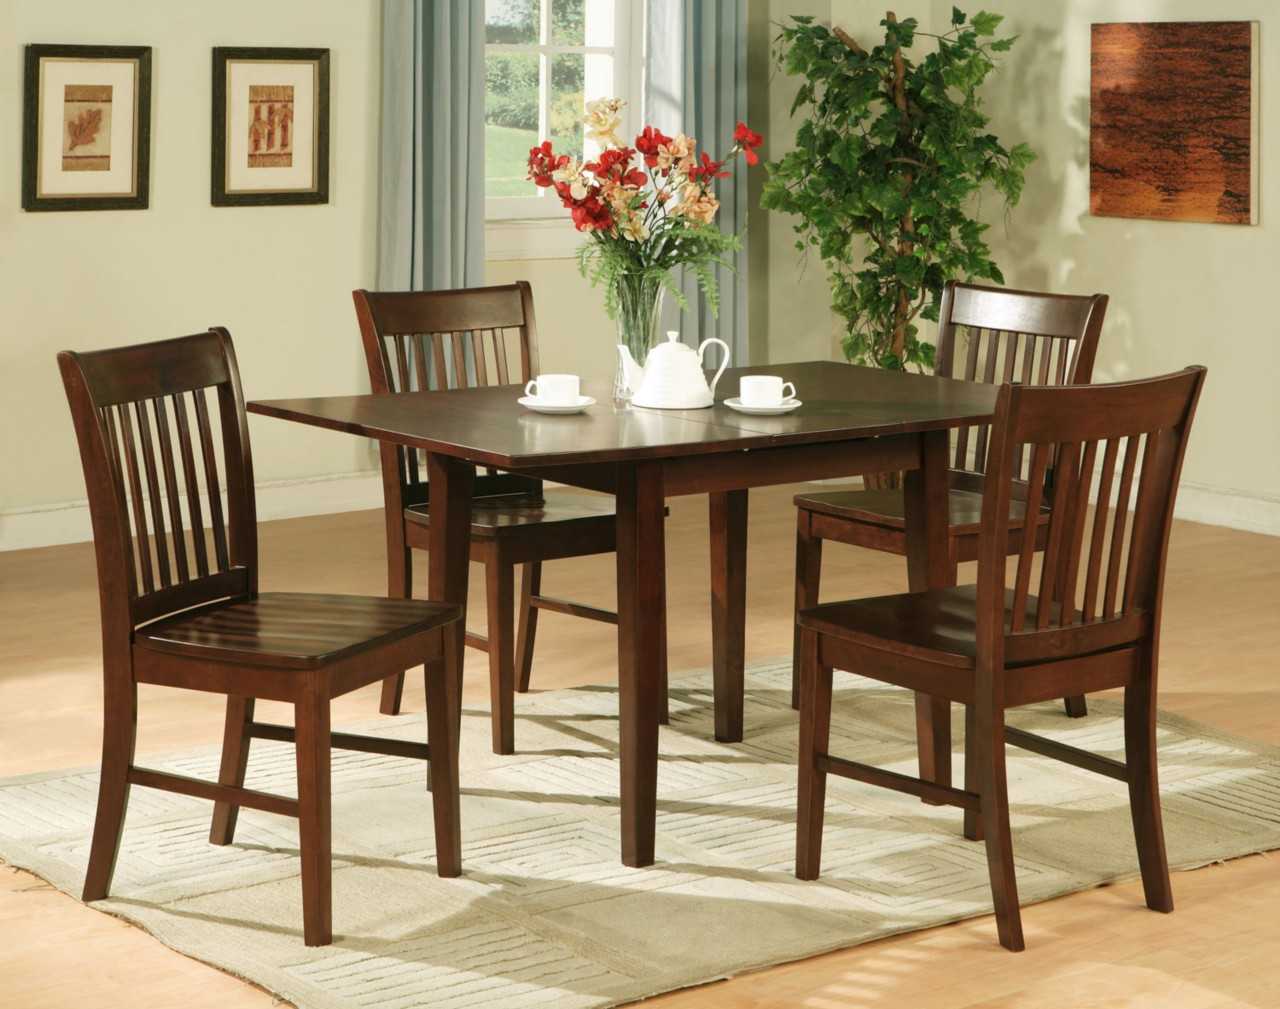 5pc rectangular kitchen dinette table 4 chairs mahogany ebay Kitchen table and chairs